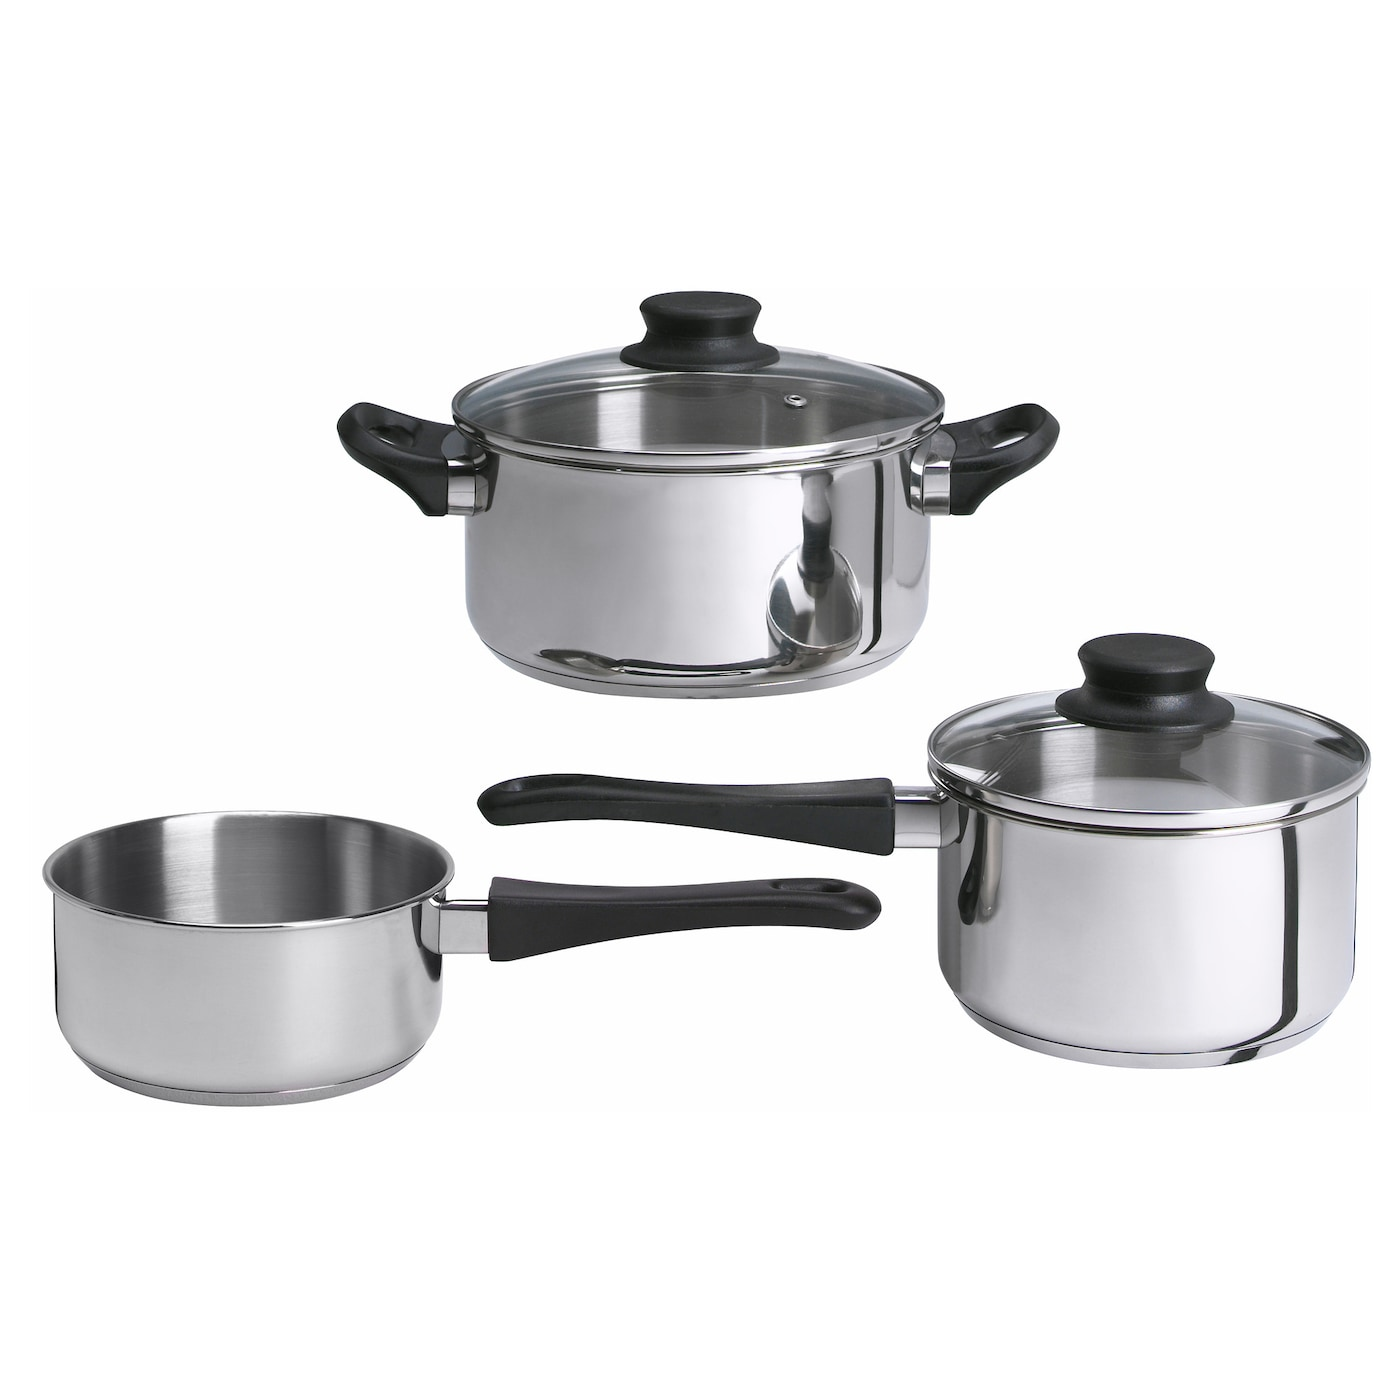 annons 5 piece cookware set glass stainless steel ikea. Black Bedroom Furniture Sets. Home Design Ideas